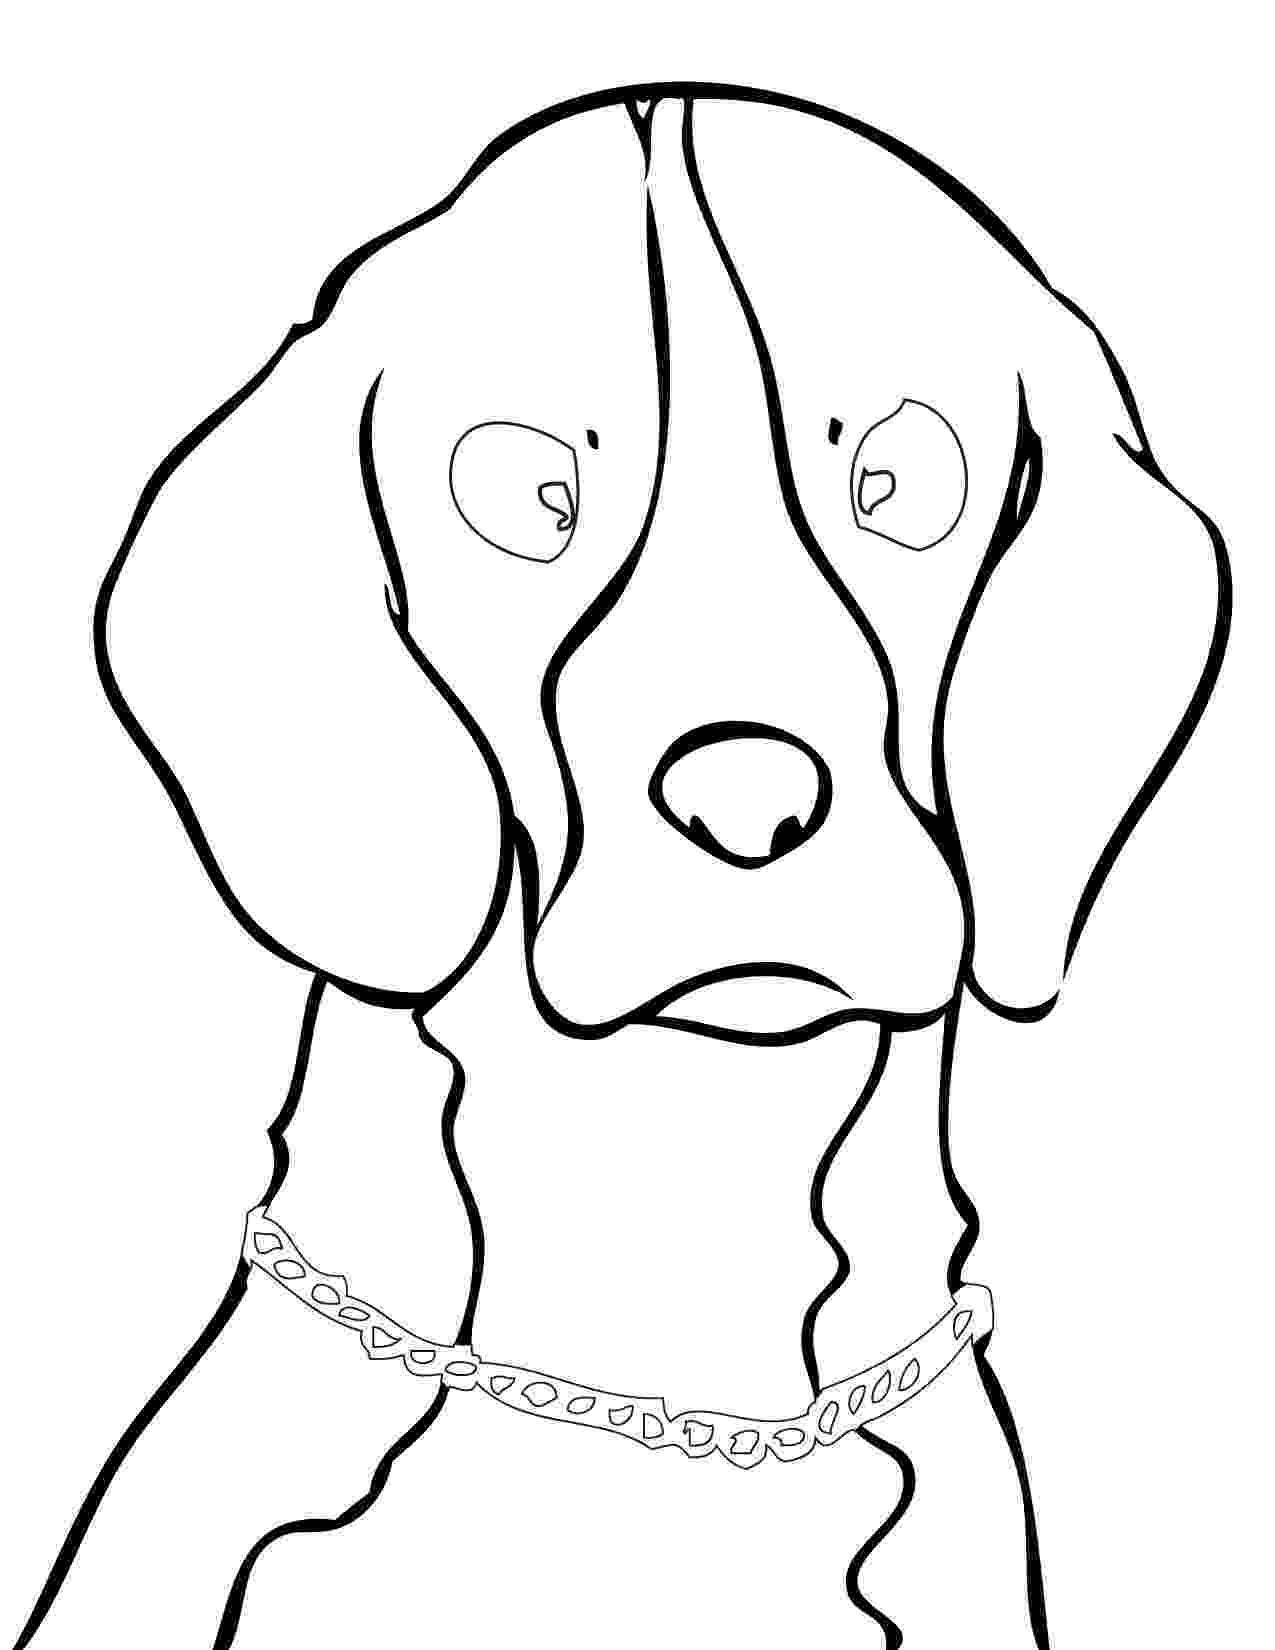 beagle coloring pages beagle coloring pages to download and print for free coloring beagle pages